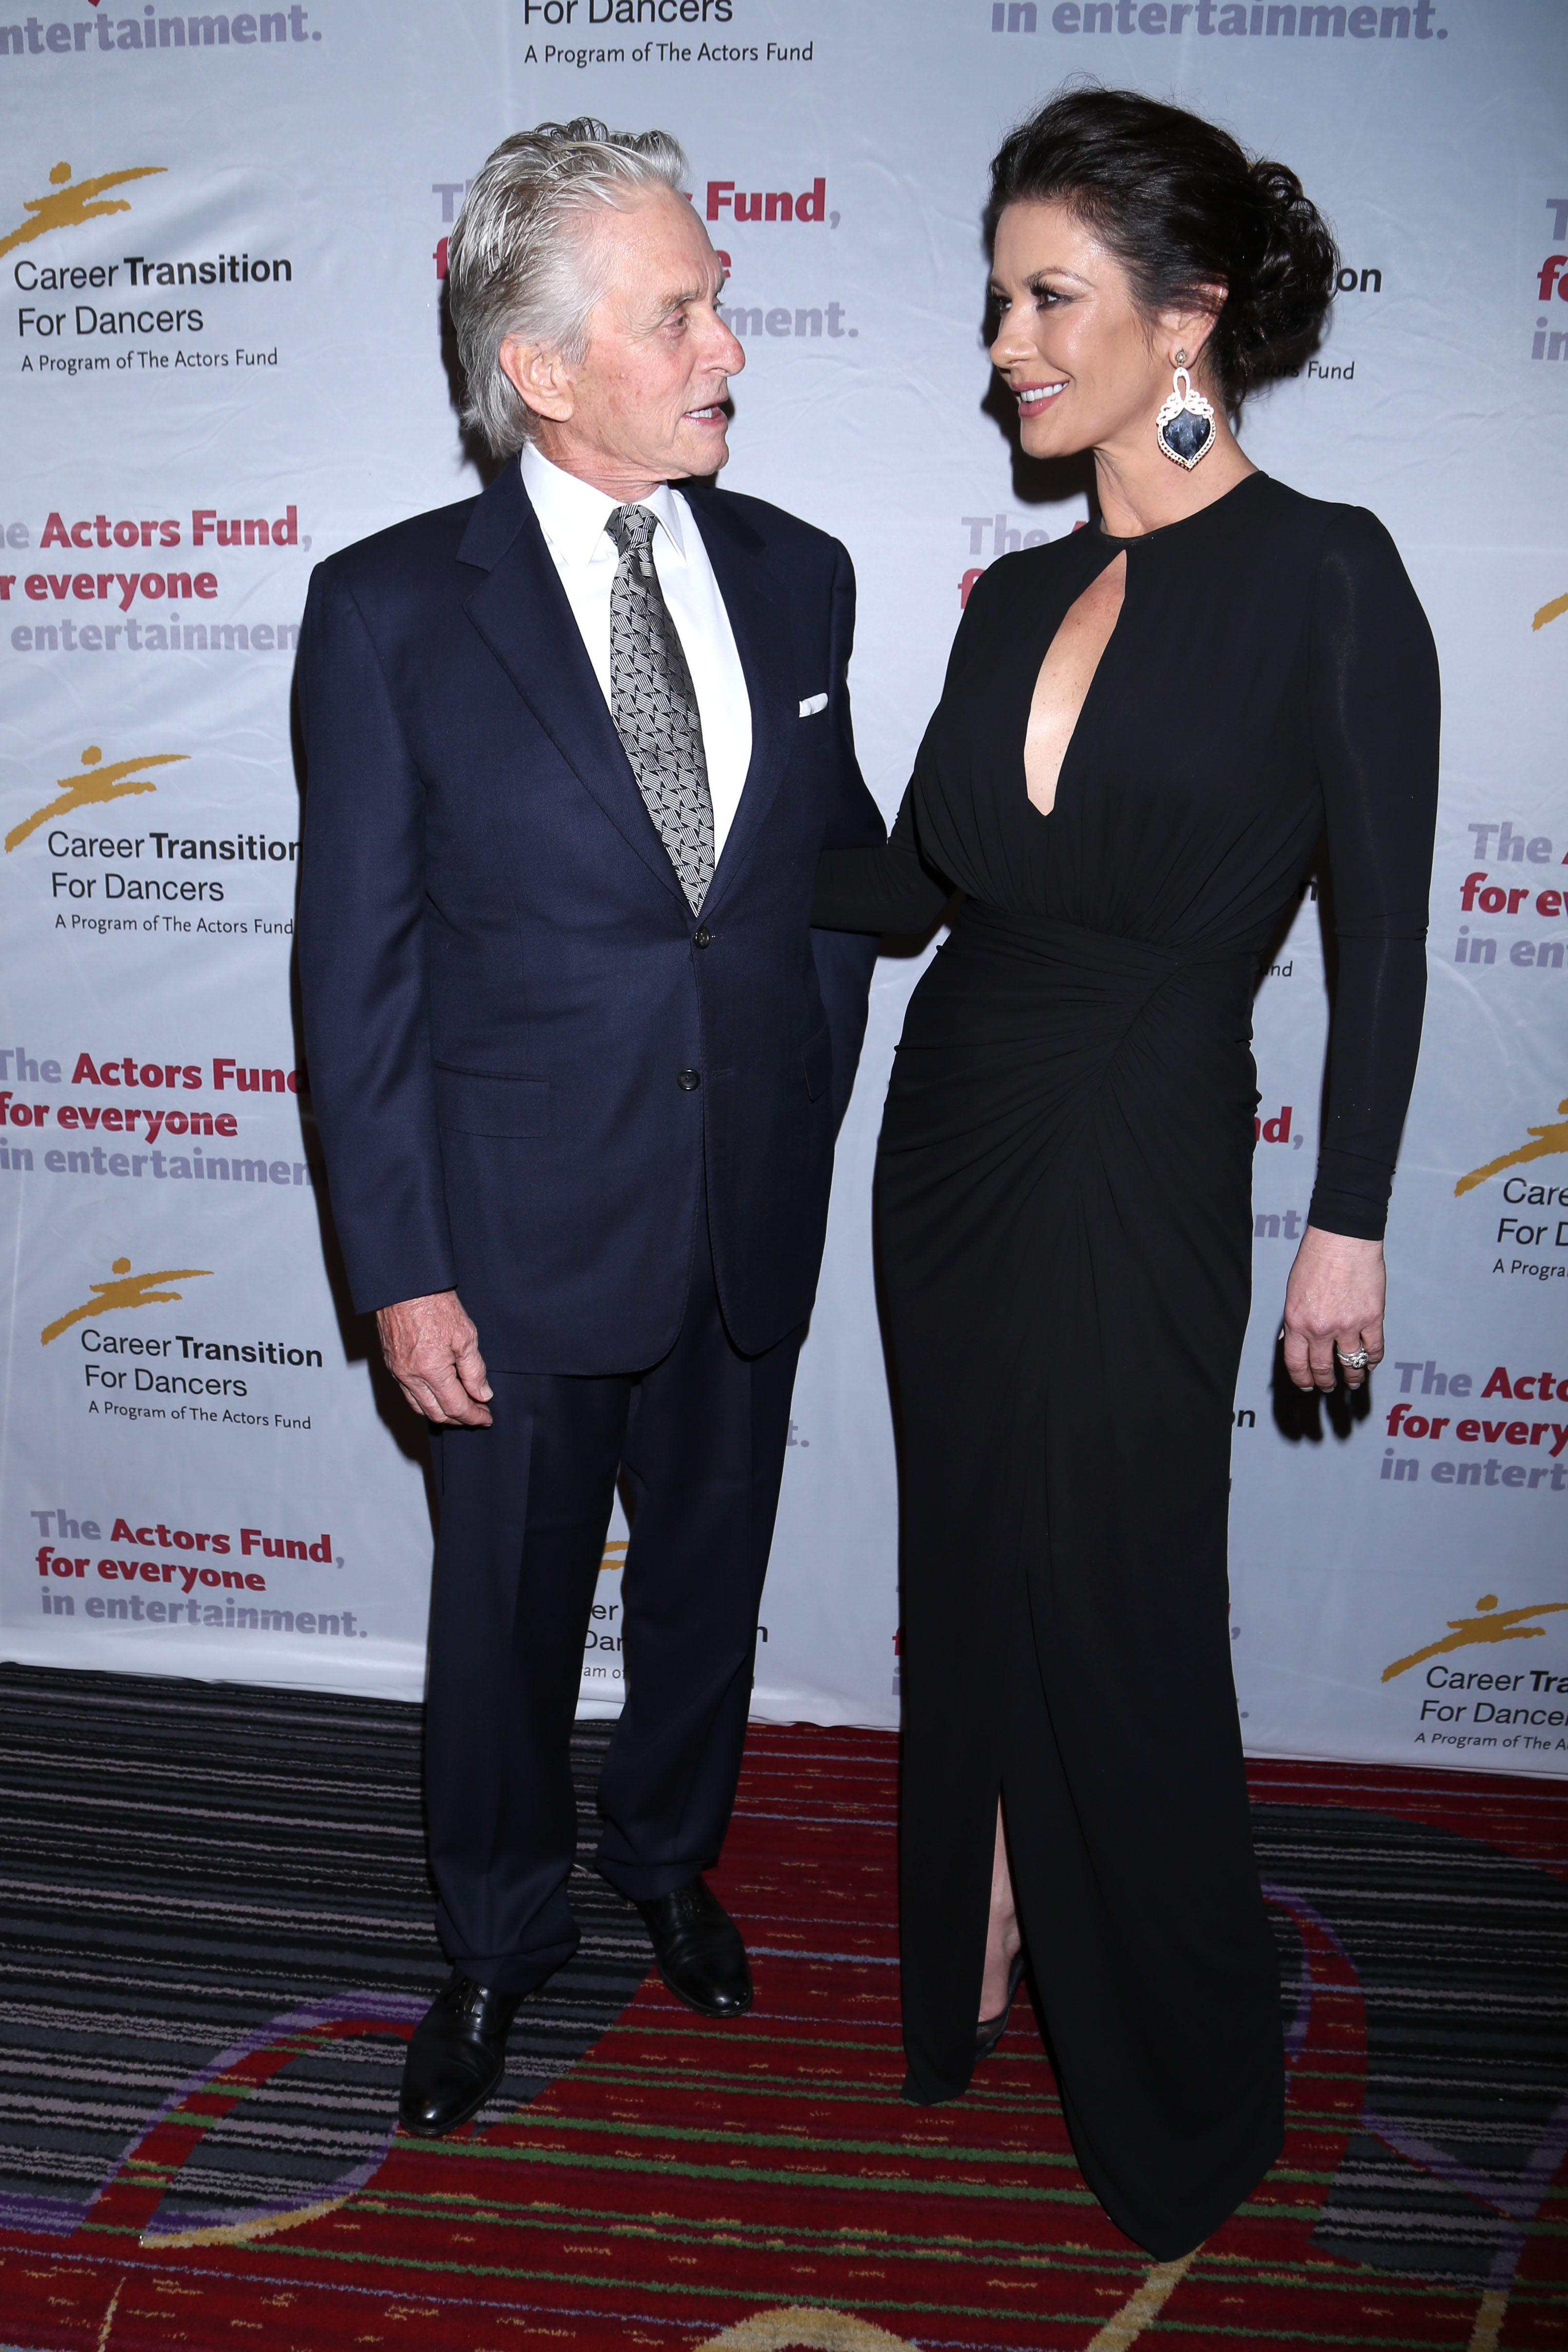 The Actors Fund's Career Transition for Dancers Jubilee Gala held at the Marriott Marquis Hotel - Arrivals.                                    Featuring: Michael Douglas, Catherine Zeta-Jones                  Where: New York, New York, United States                  When: 02 Nov 2017                  Credit: Joseph Marzullo/WENN.com                                    **No Contact Music**